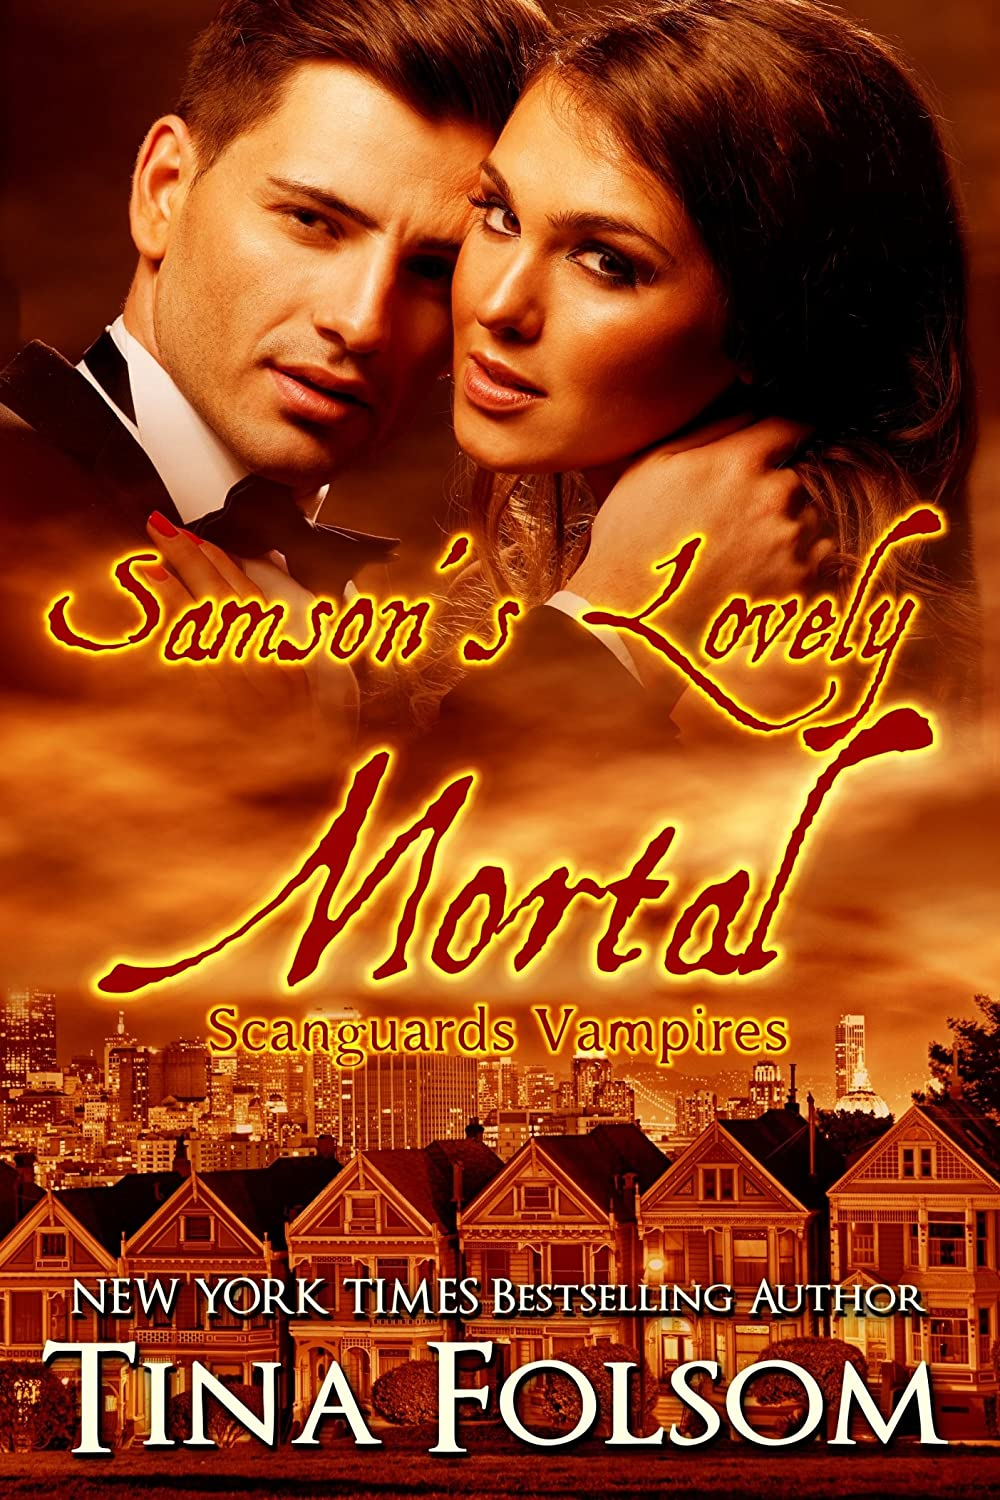 Samson's Lovely Mortal (Scanguards Vampires Book 1) by Tina Folsom